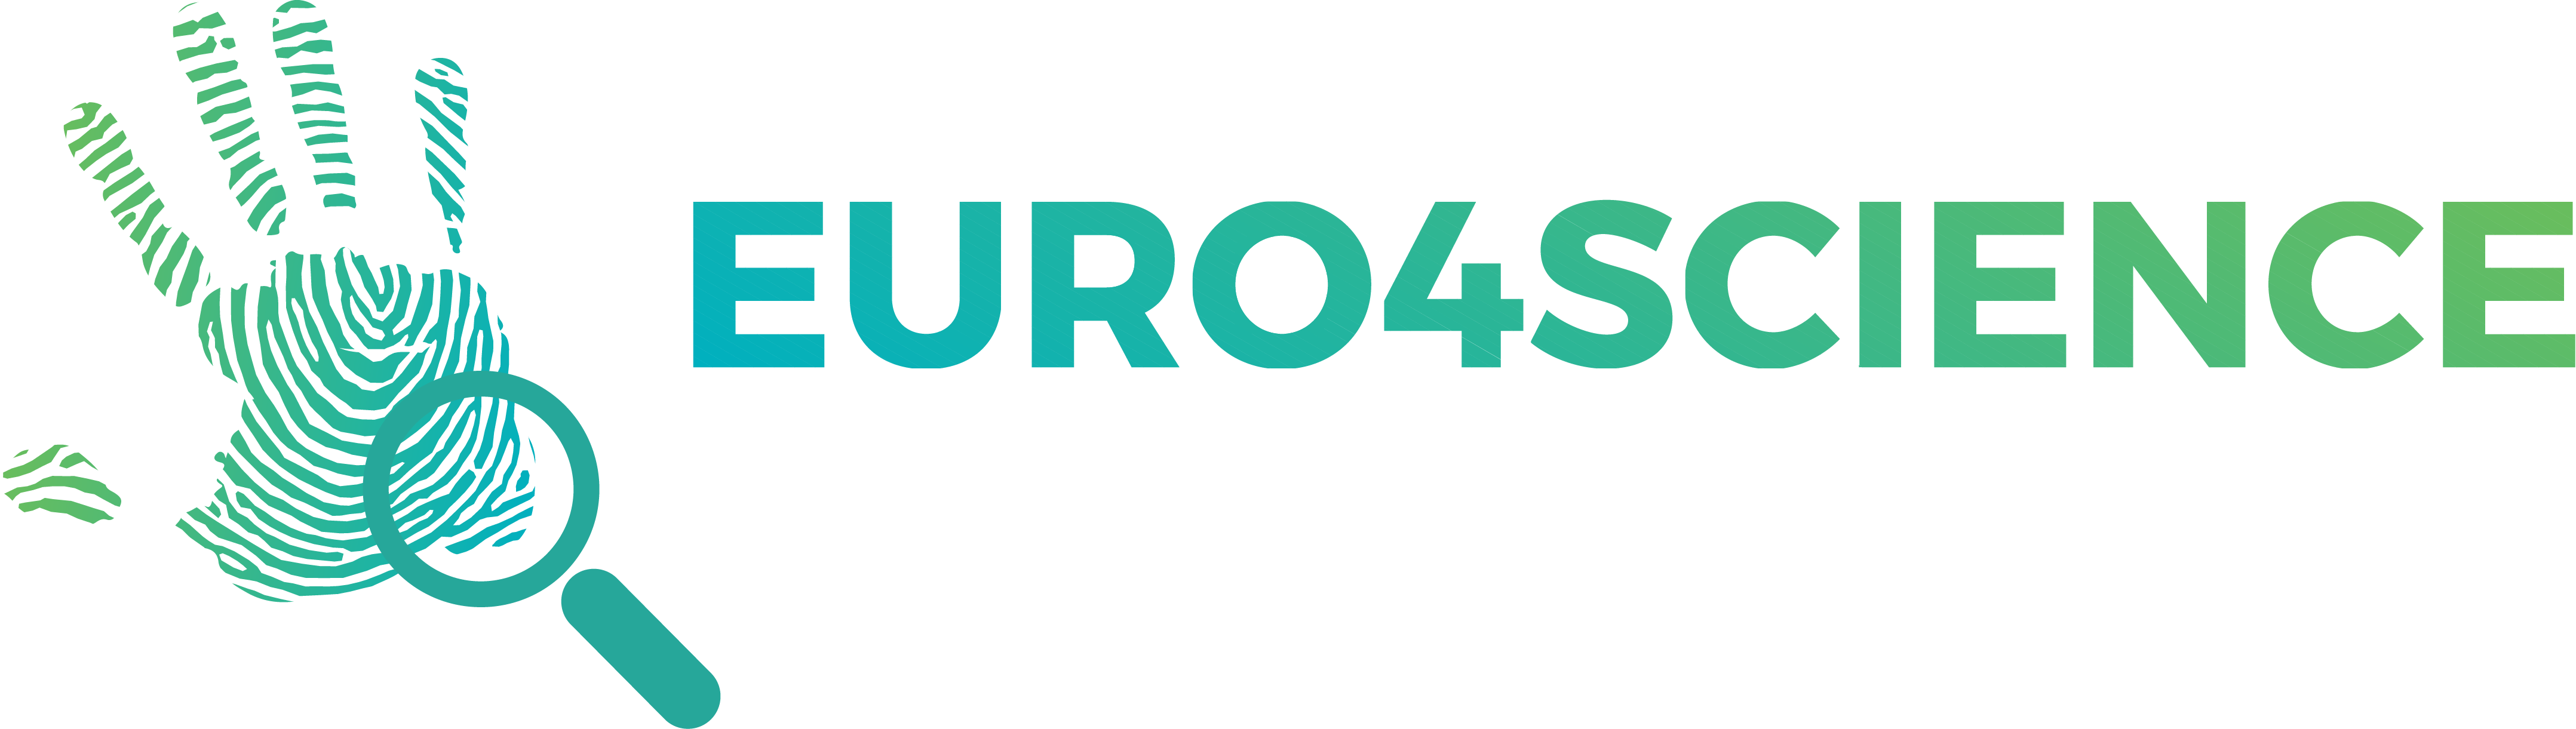 EURO4SCIENCE